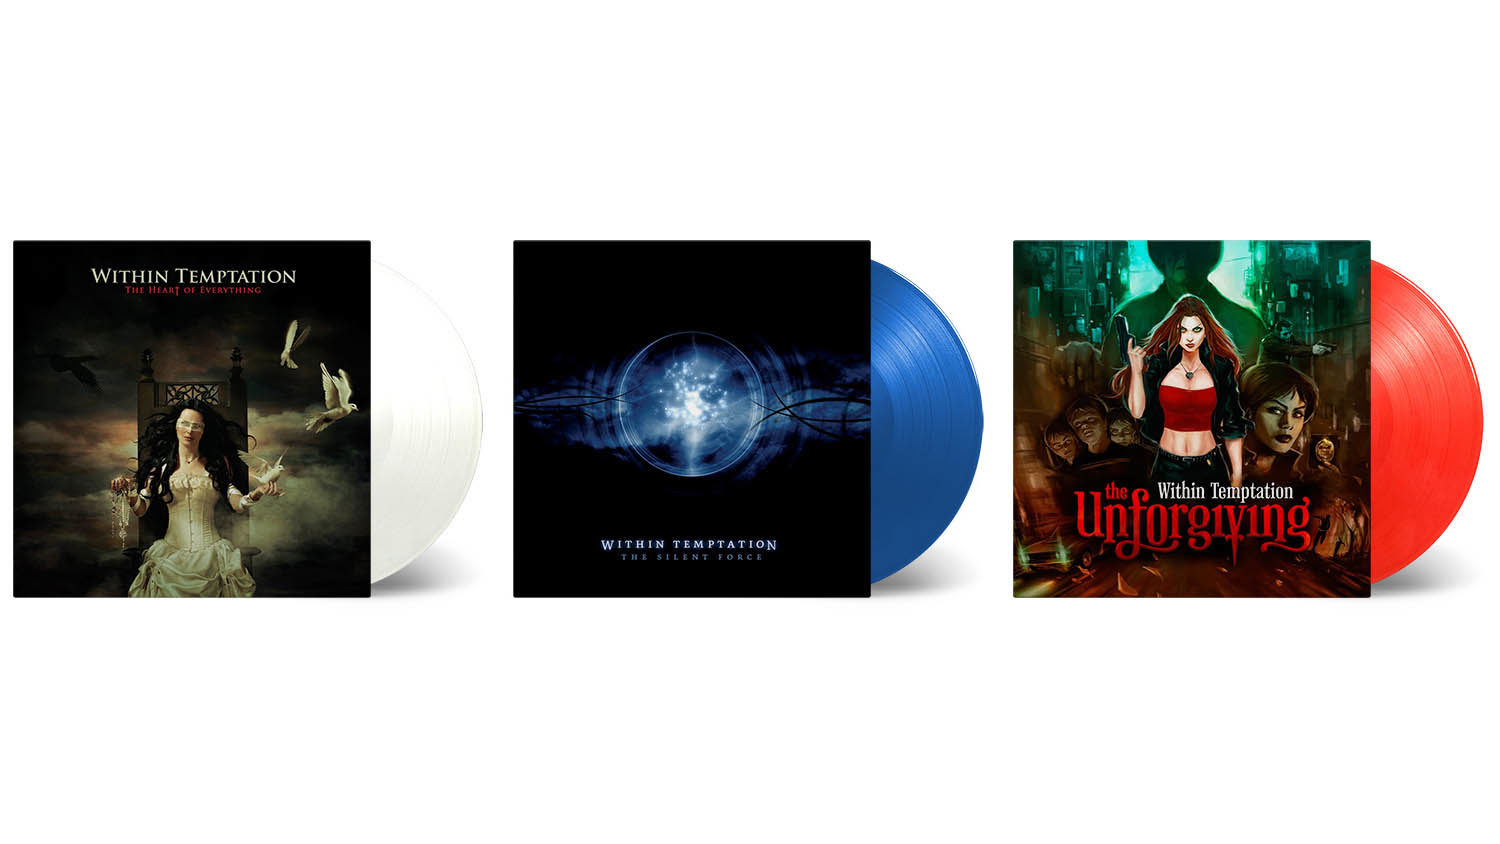 Within Temptation coloured vinyl LP